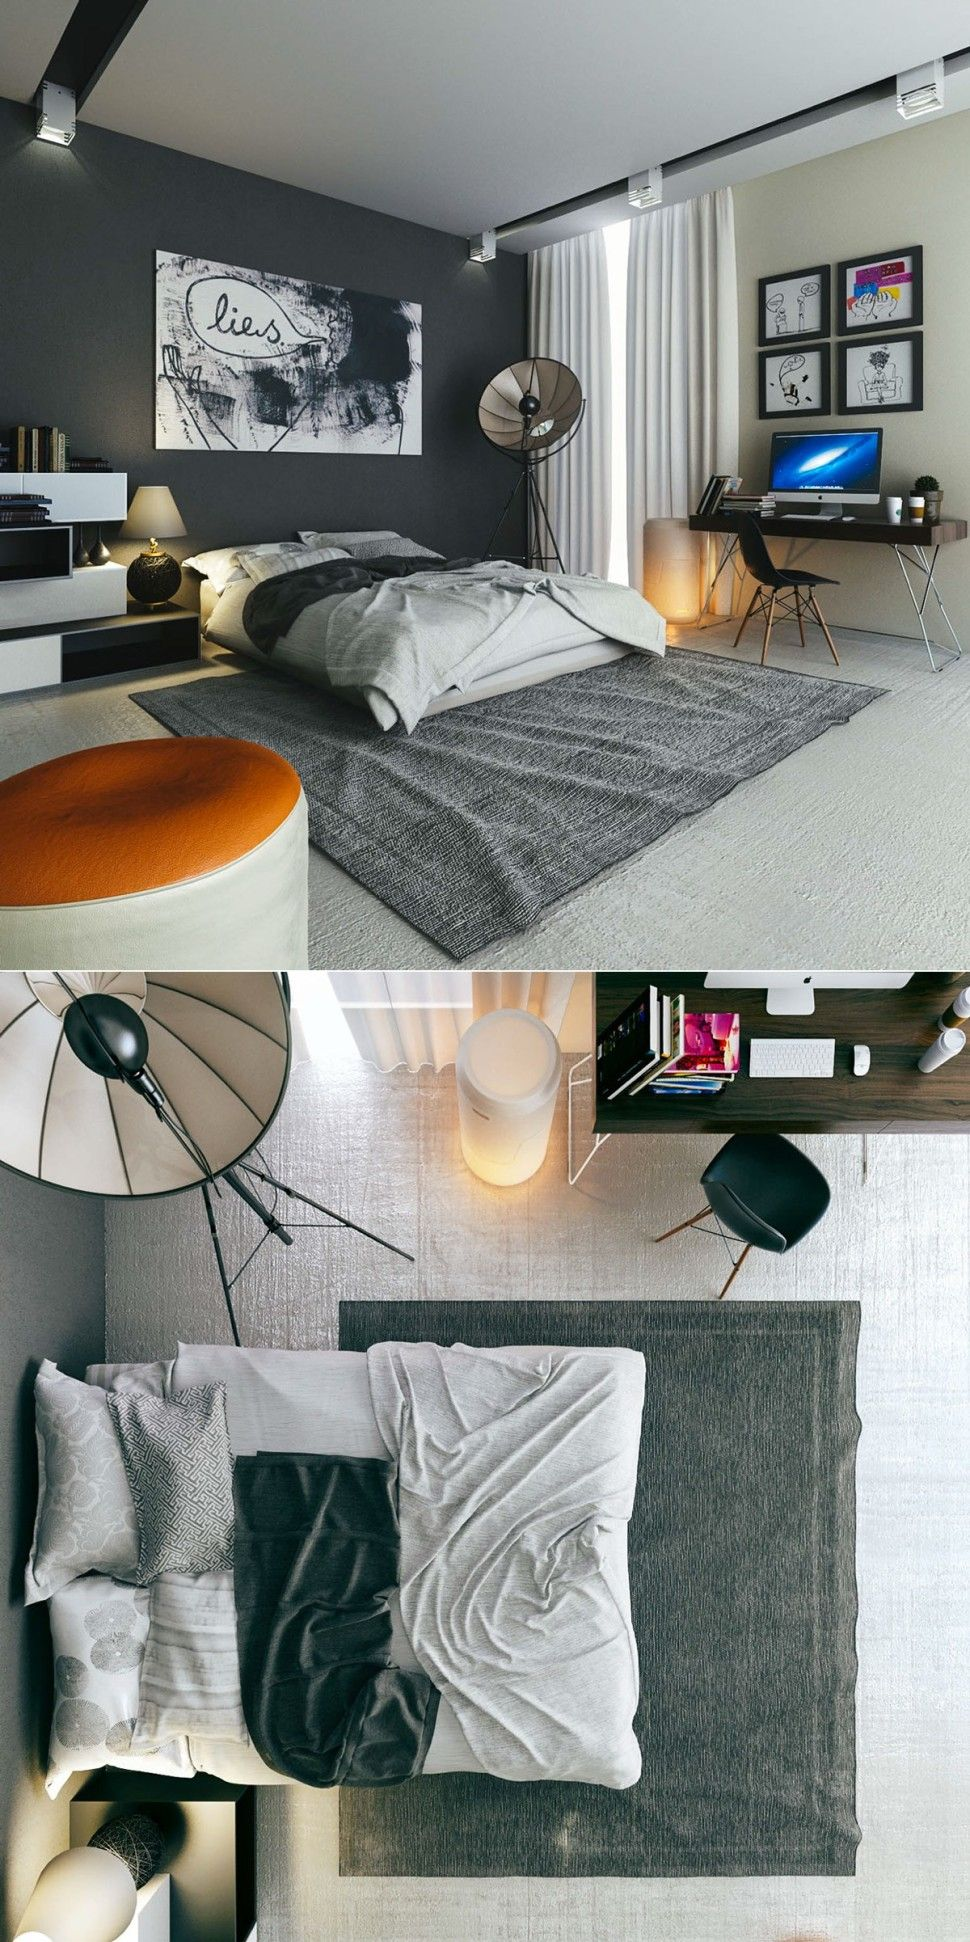 bedroom ideasmasculine bedroom design with orange chair and abstract paint delightful bedrooms for all